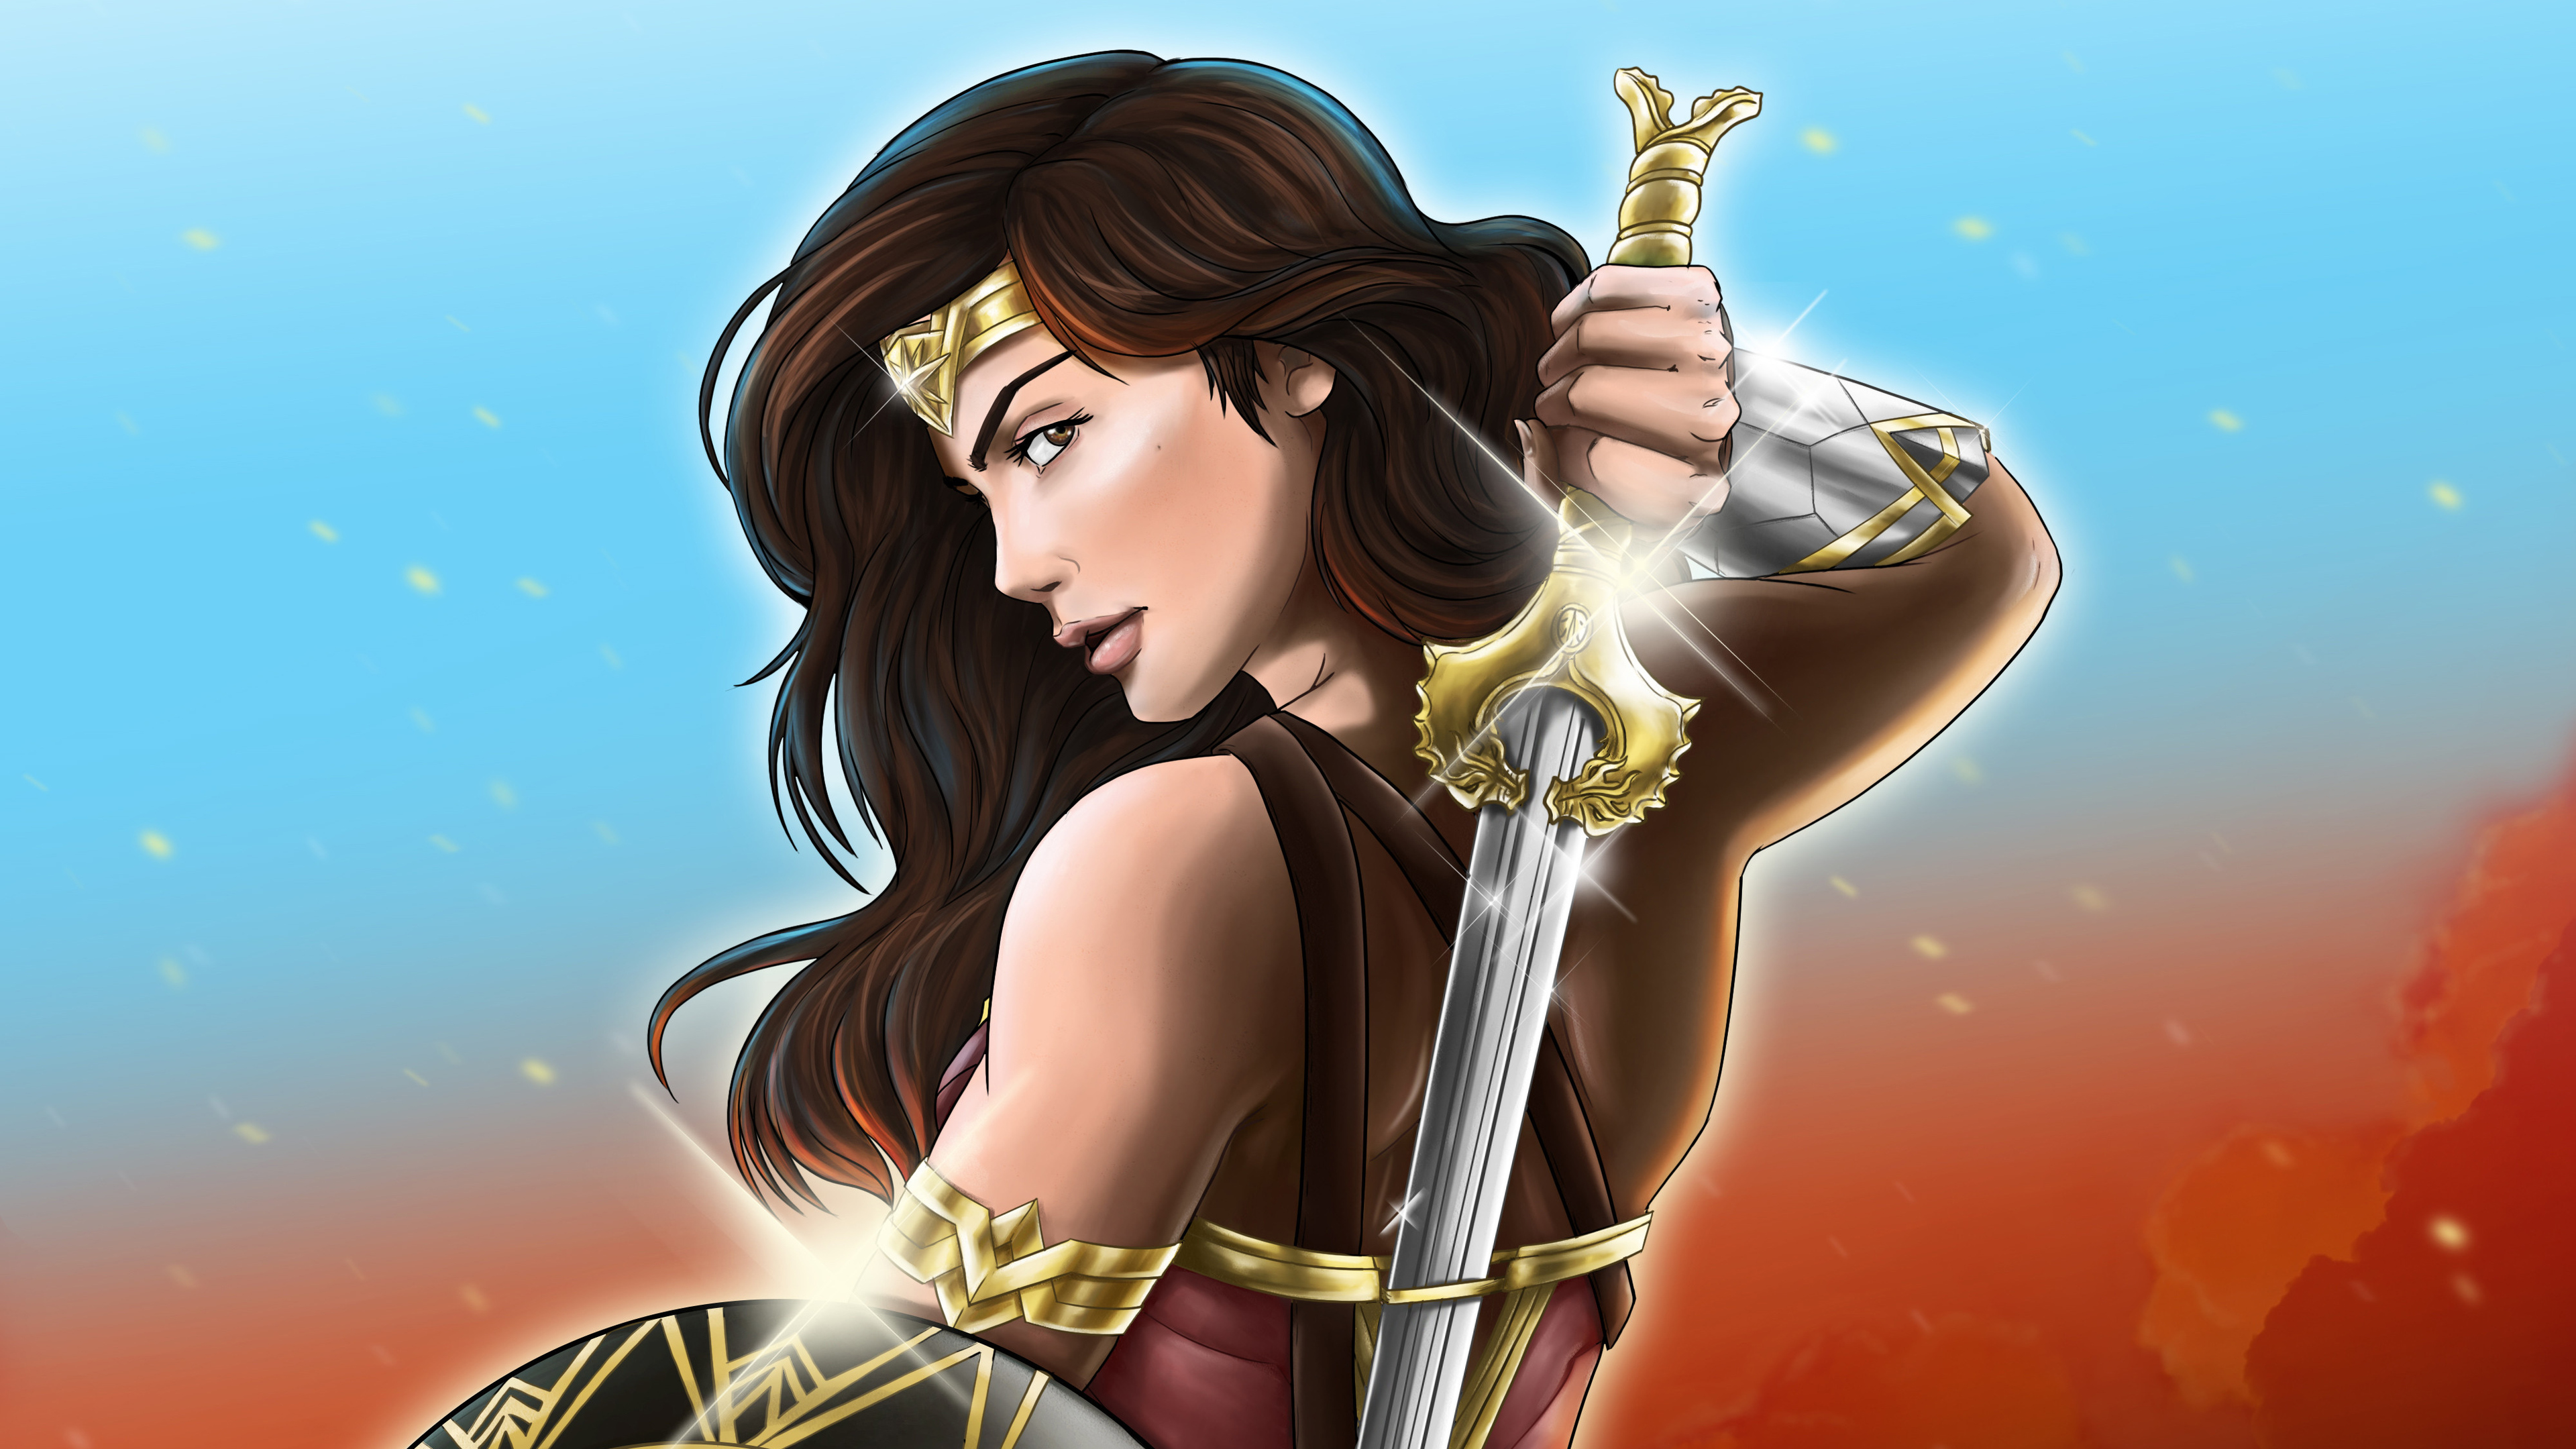 wonder woman god killer sword 4k 1547319656 - Wonder Woman God Killer Sword 4k - wonder woman wallpapers, superheroes wallpapers, hd-wallpapers, digital art wallpapers, artwork wallpapers, artist wallpapers, 4k-wallpapers